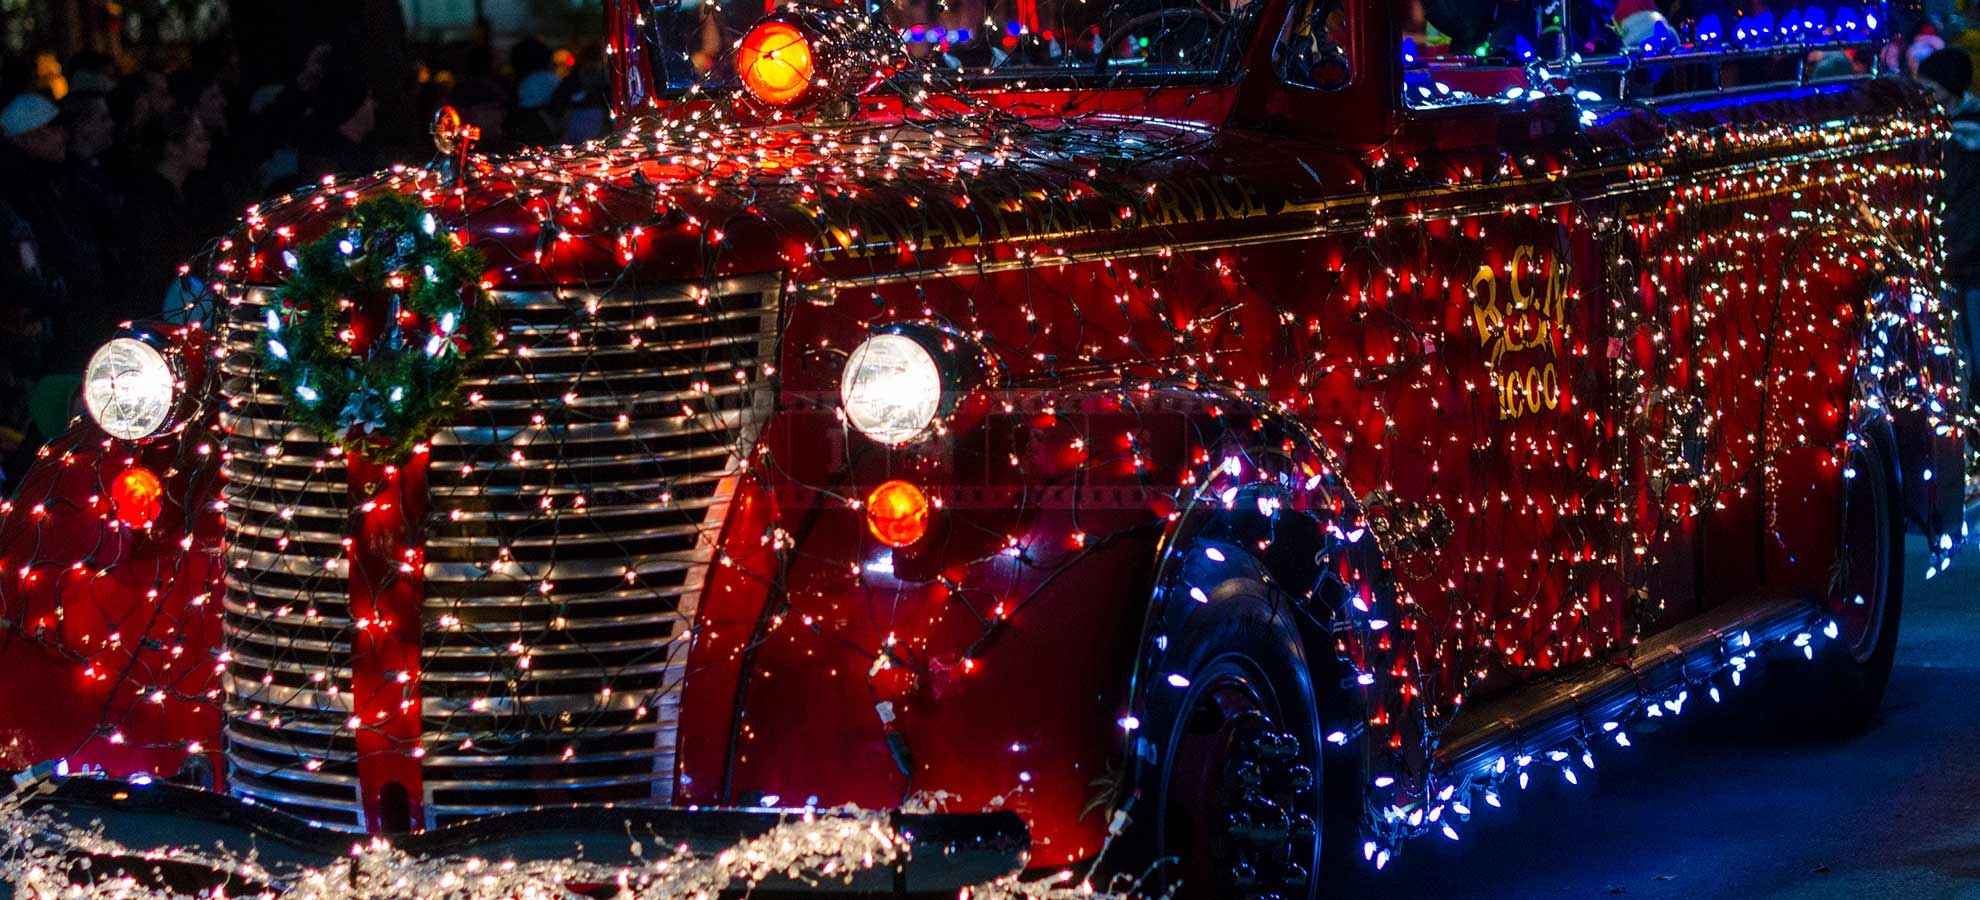 Amazing Christmas decorations of a fire truck at the parade